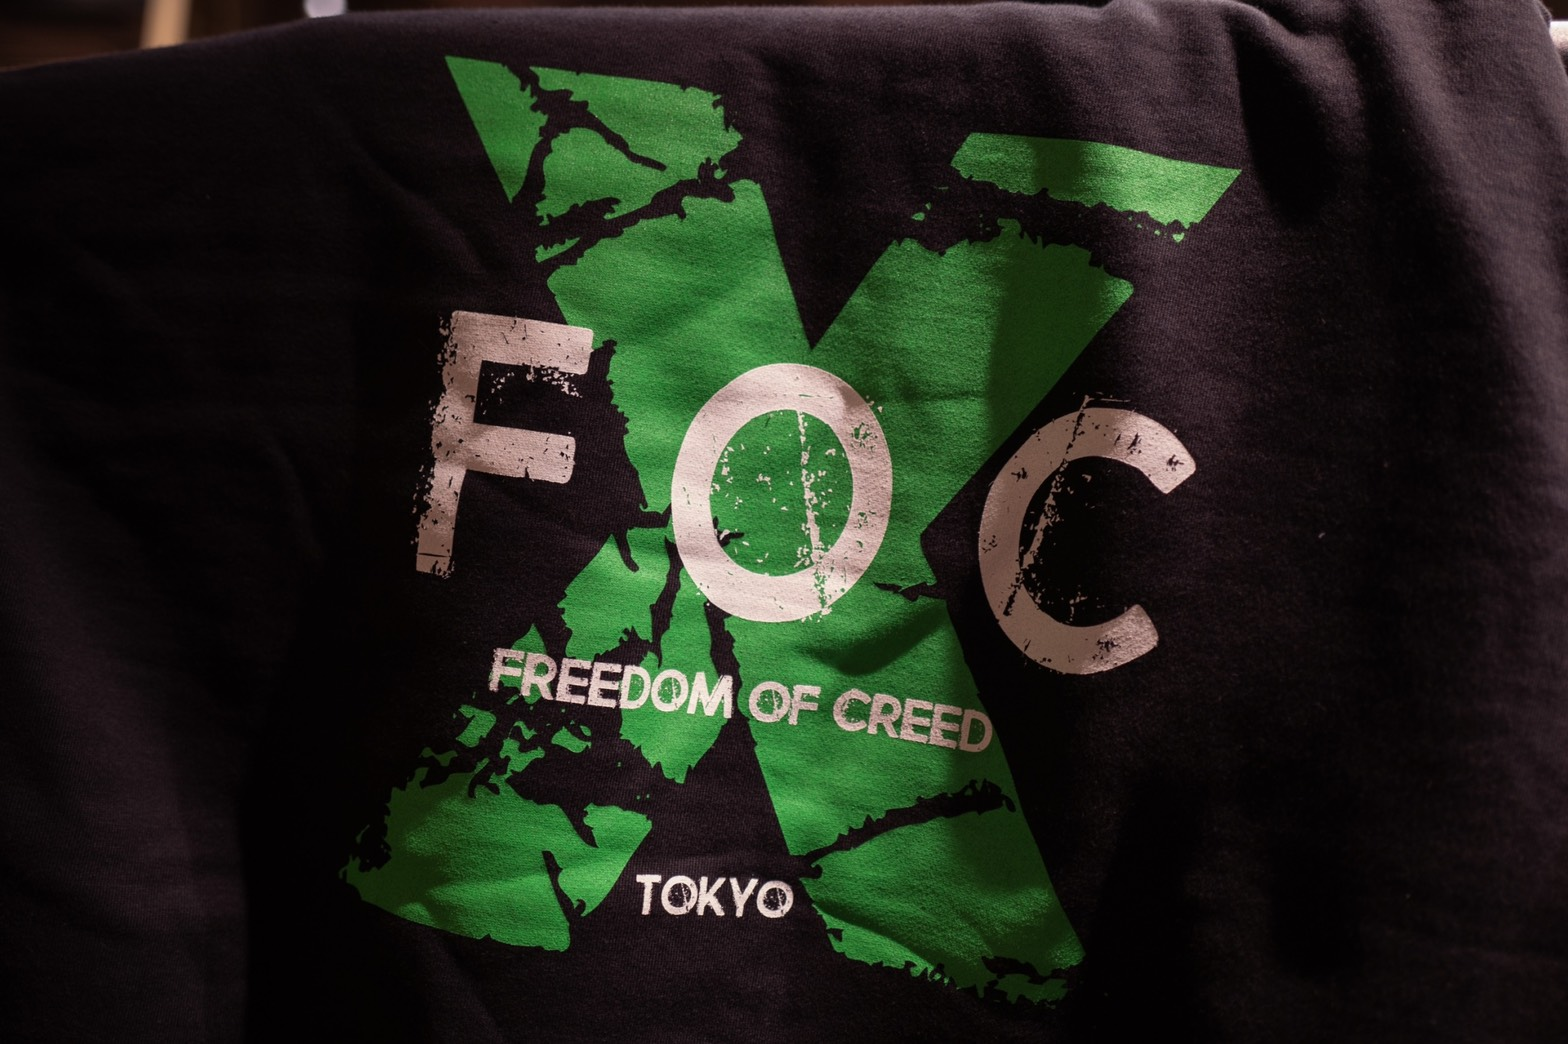 FREEDOM_OF_CREED